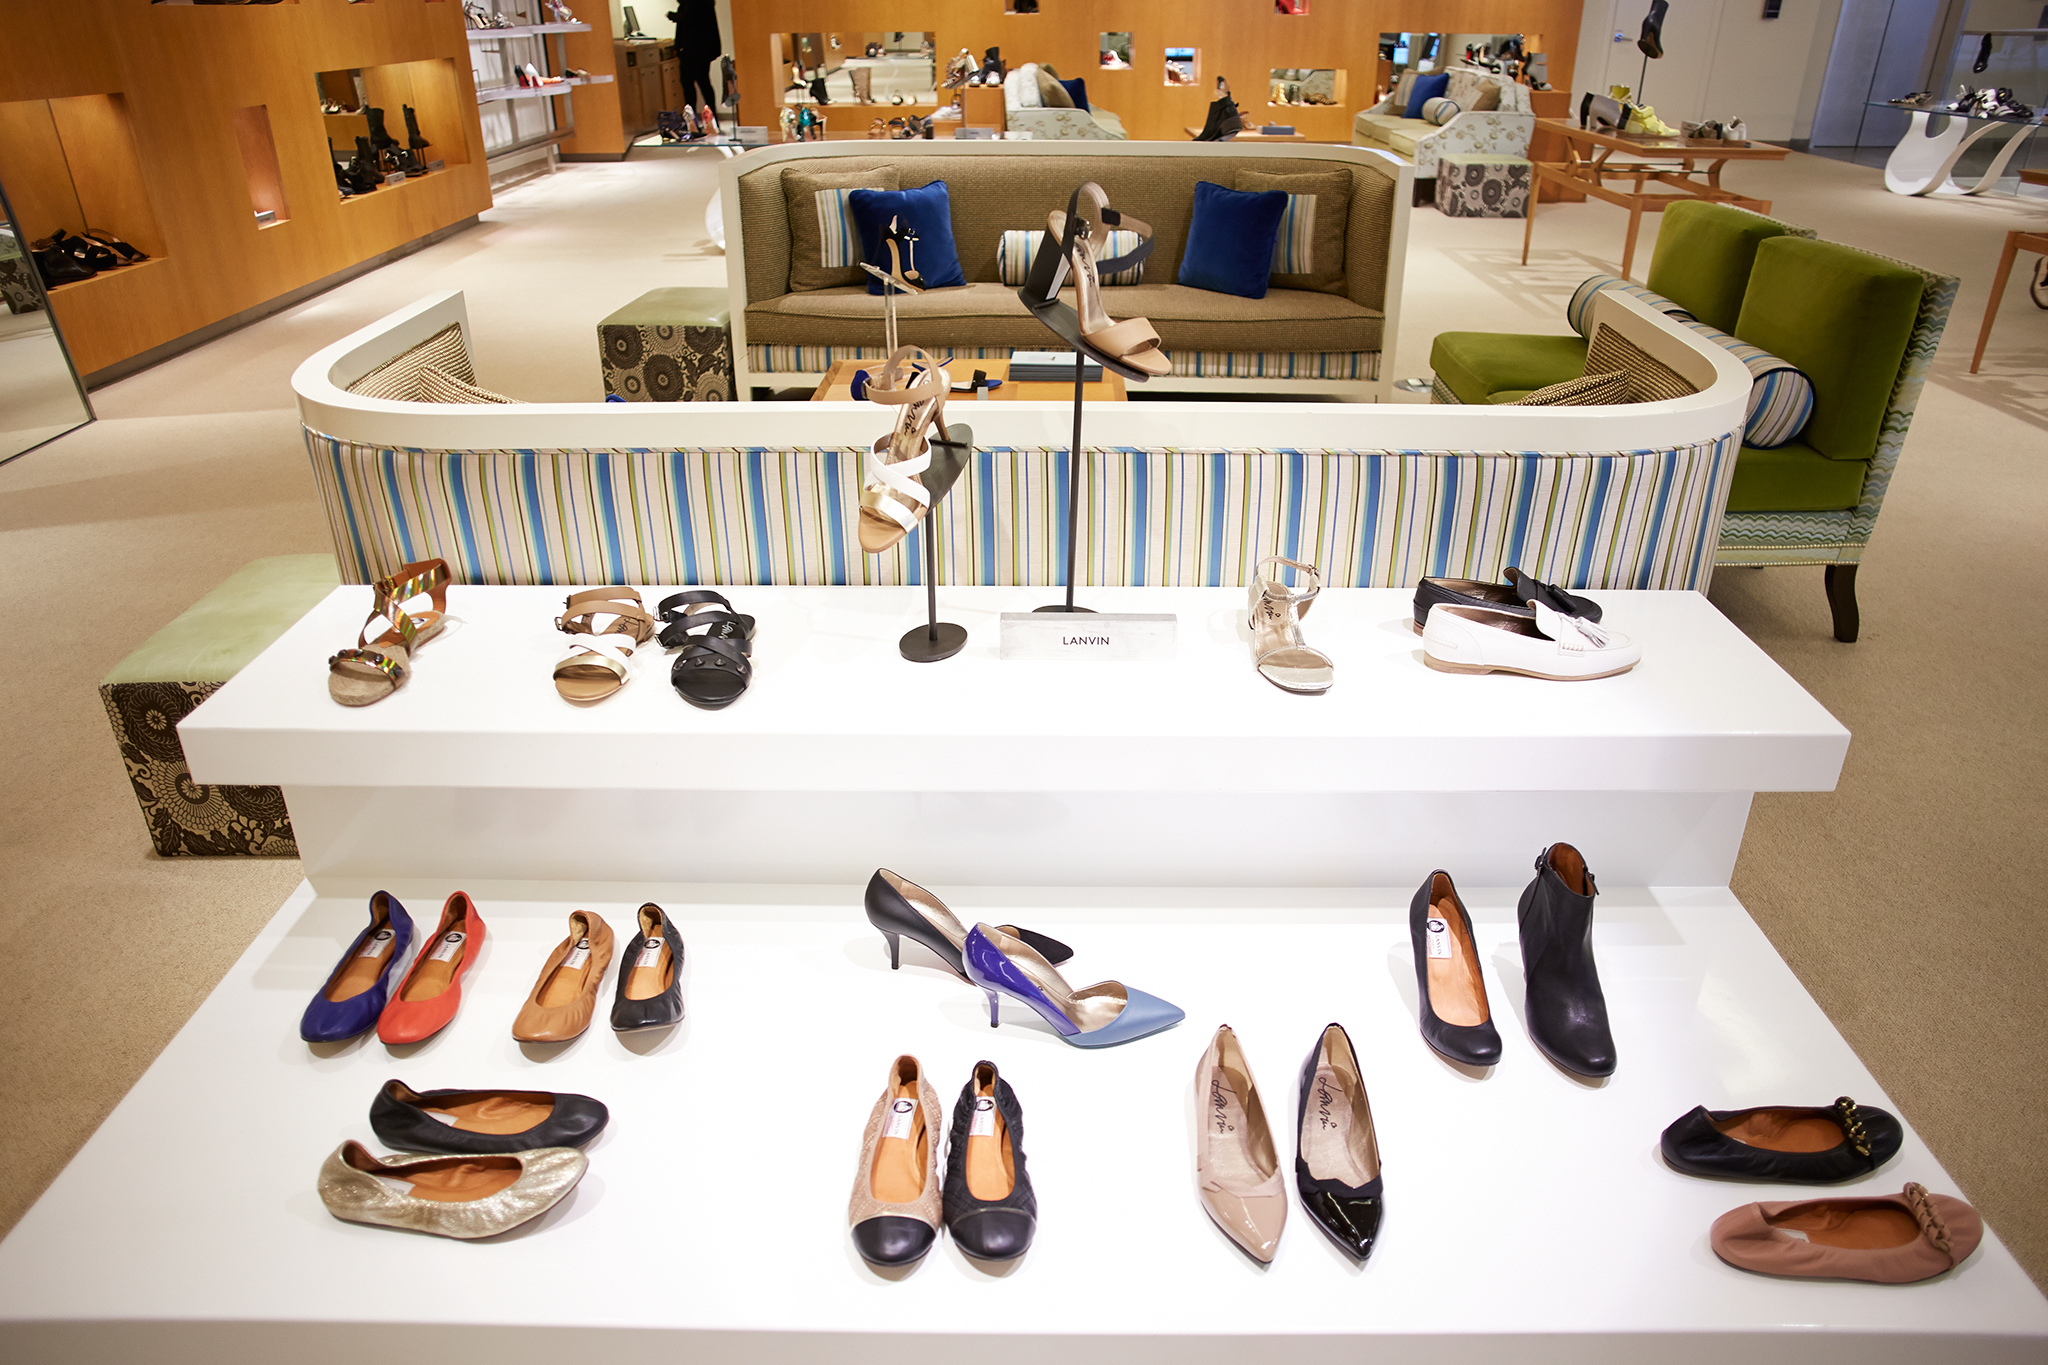 The best shoe shops in Chicago. Thrift stores in Chicago for secondhand shopping